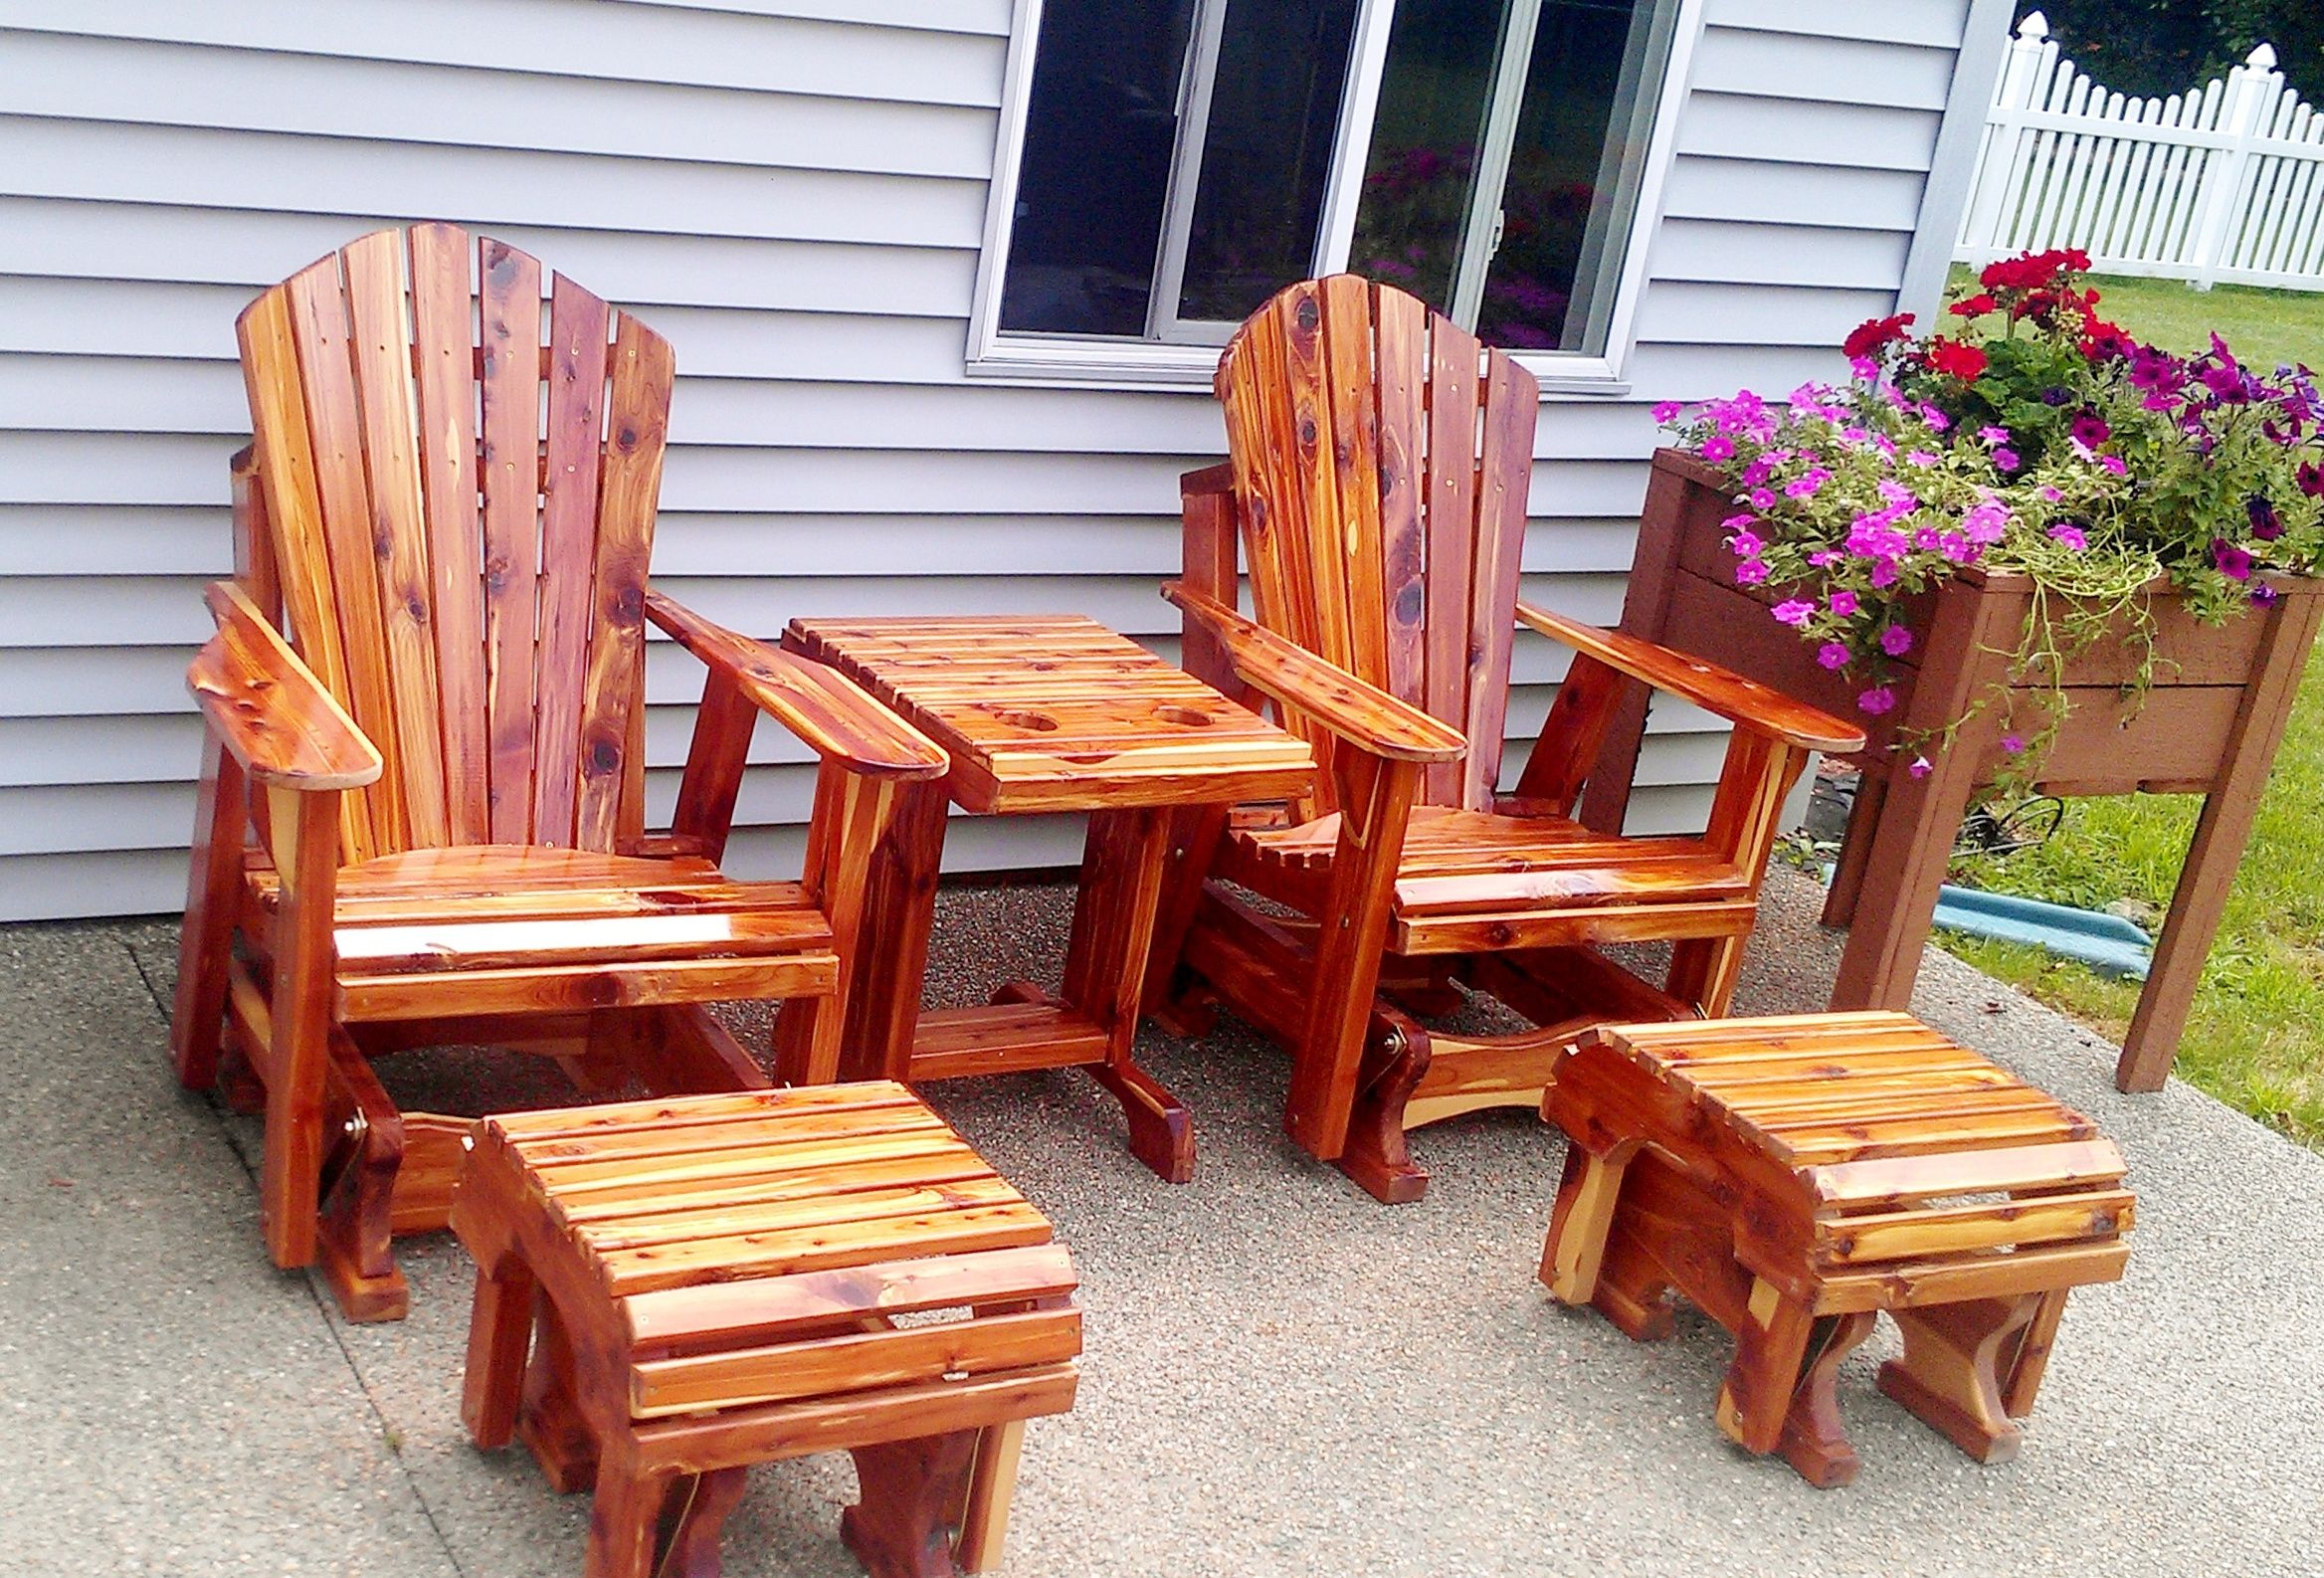 Cedar Wood Outdoor Furniture Best Paint for Furniture Check more